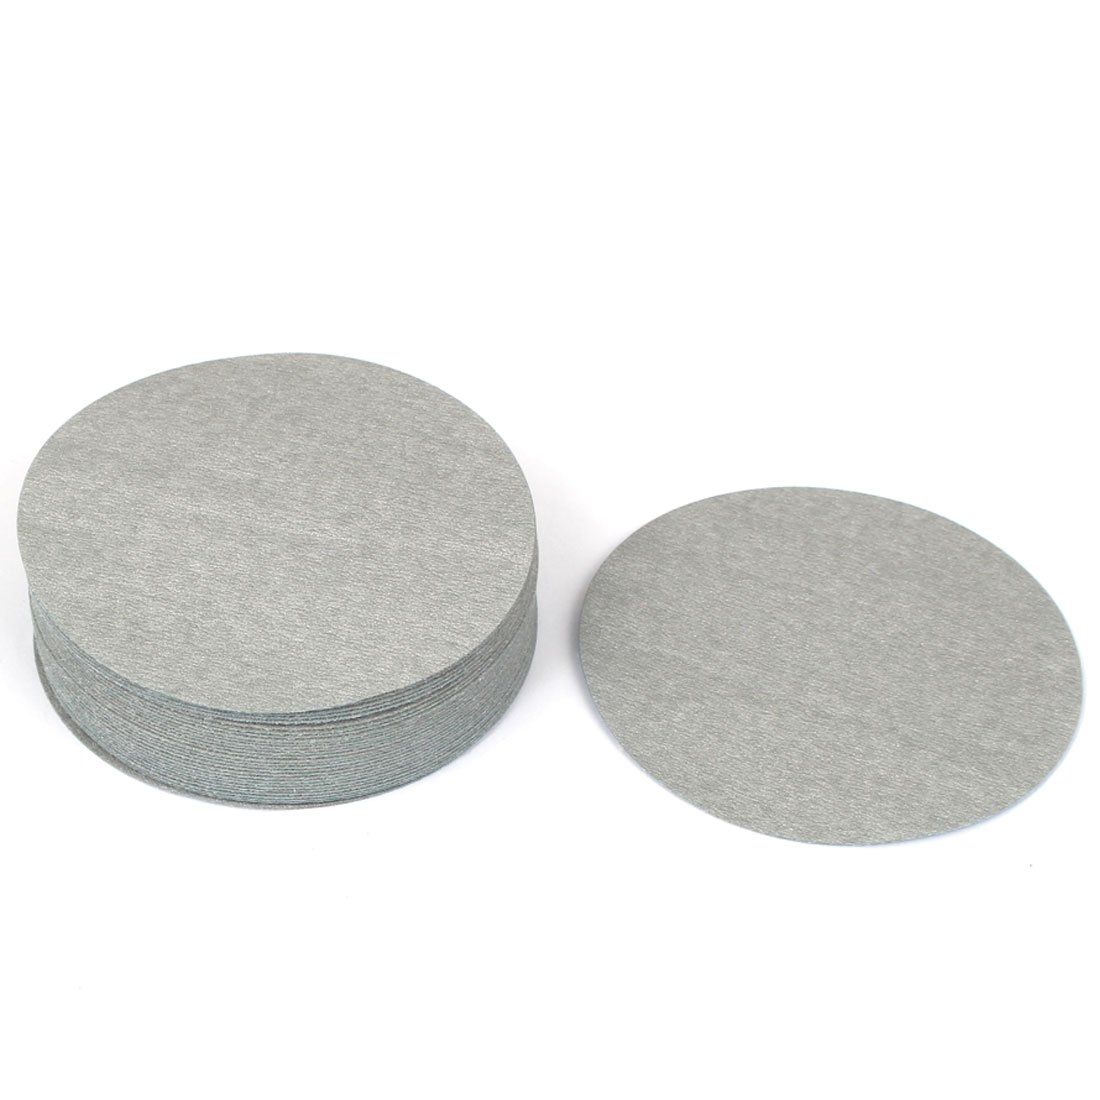 uxcell® Artificial Stone Grinding 800 Grit Hook and Loop Sanding Disc Flocking Sandpaper 10PCS